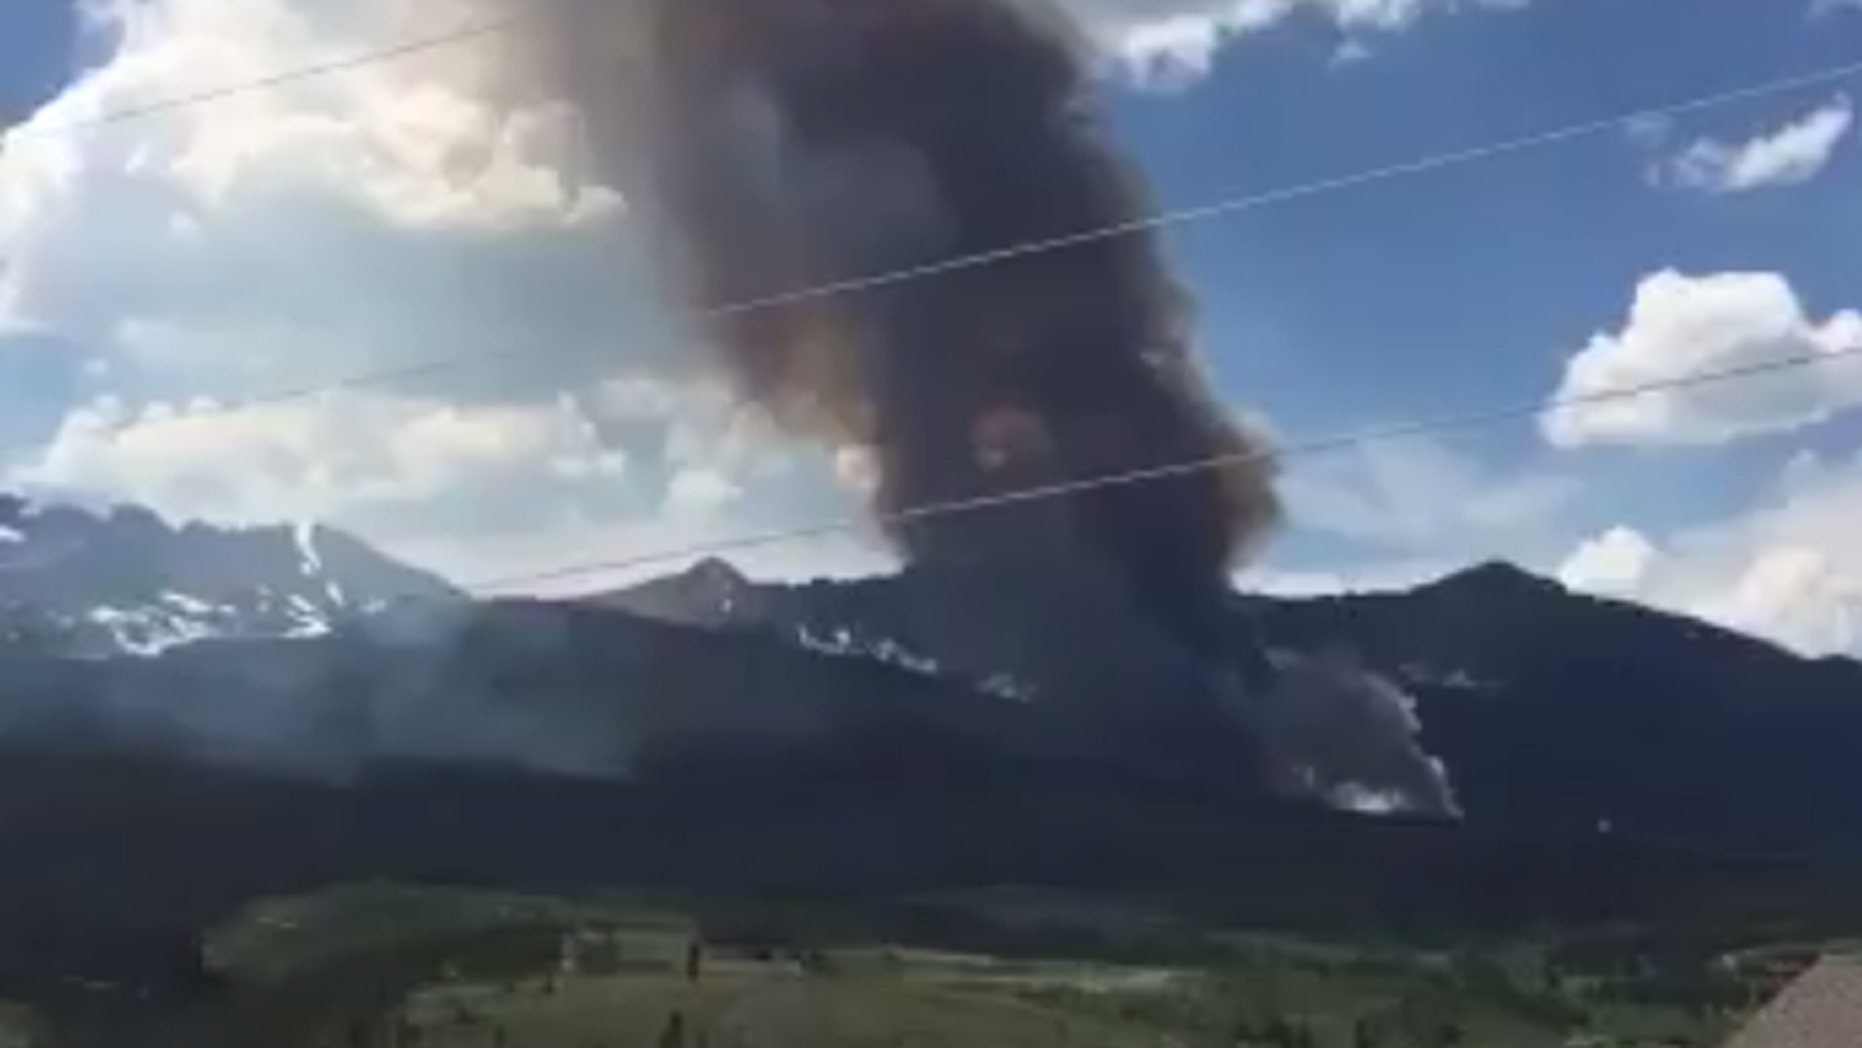 A fire near Breckenridge, Colorado broke out Wednesday afternoon.